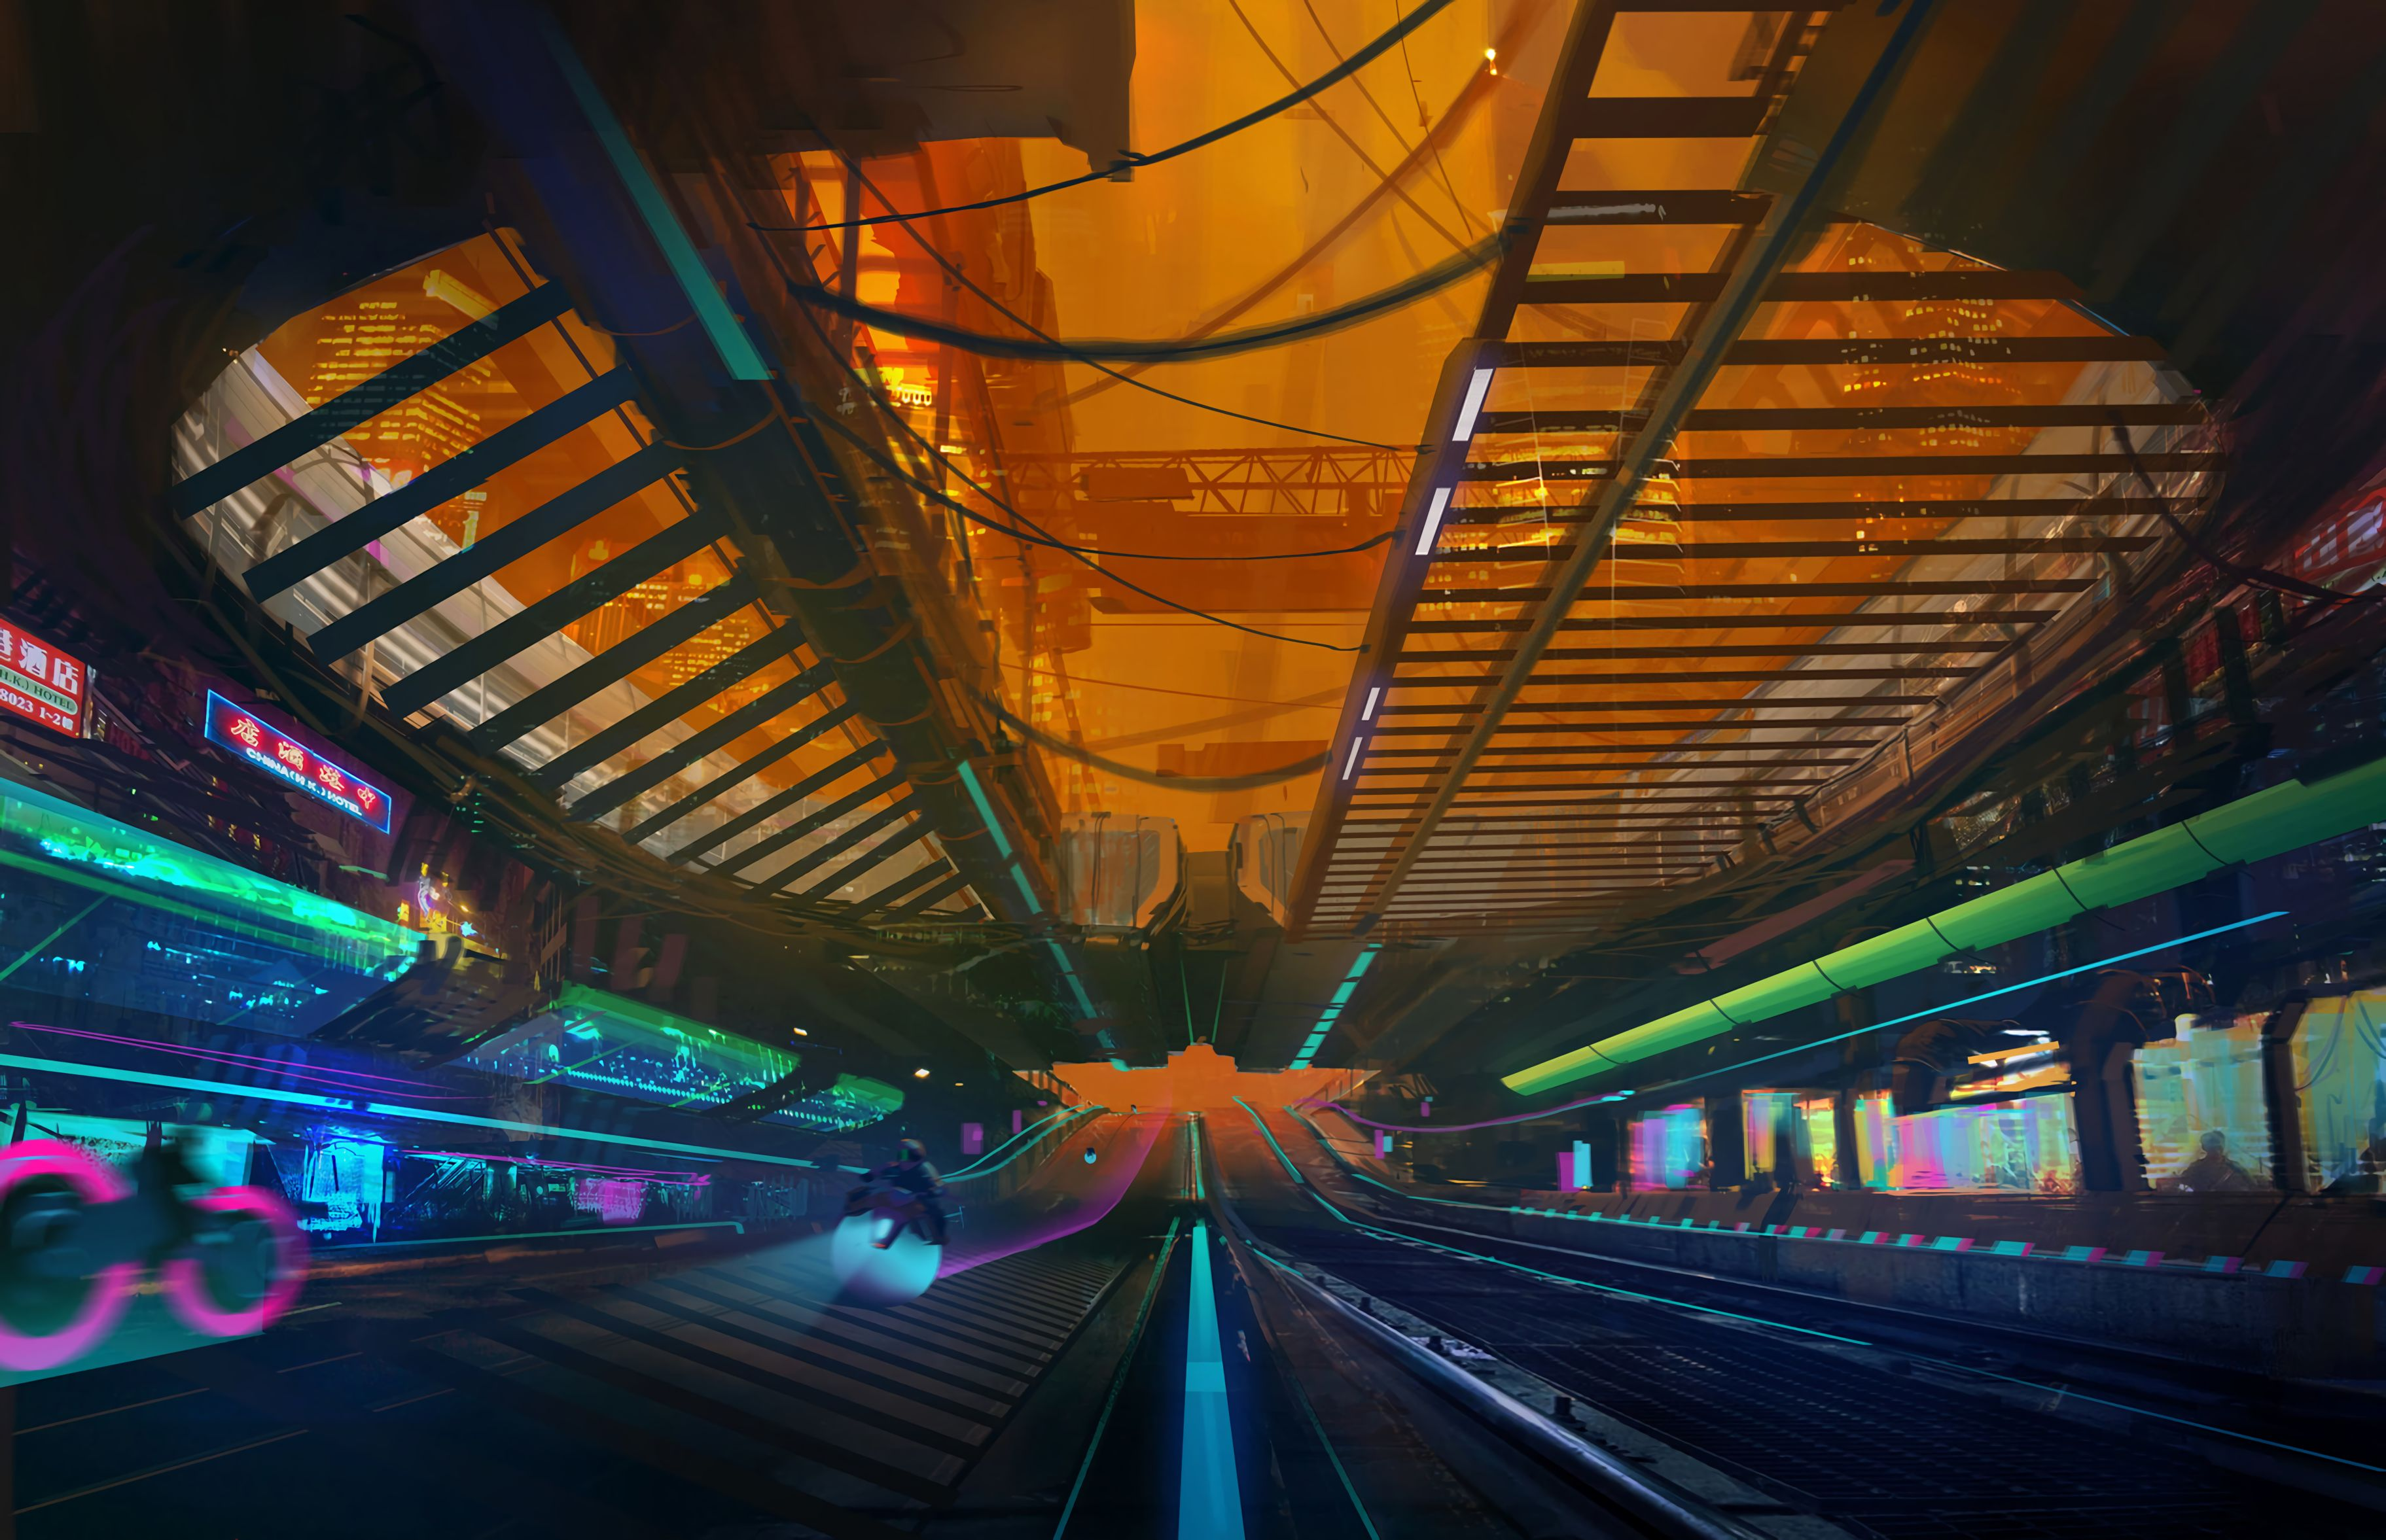 122344 download wallpaper Overpass, Trestle, Art, Cyberpunk, Sci-Fi, Traffic, Movement screensavers and pictures for free